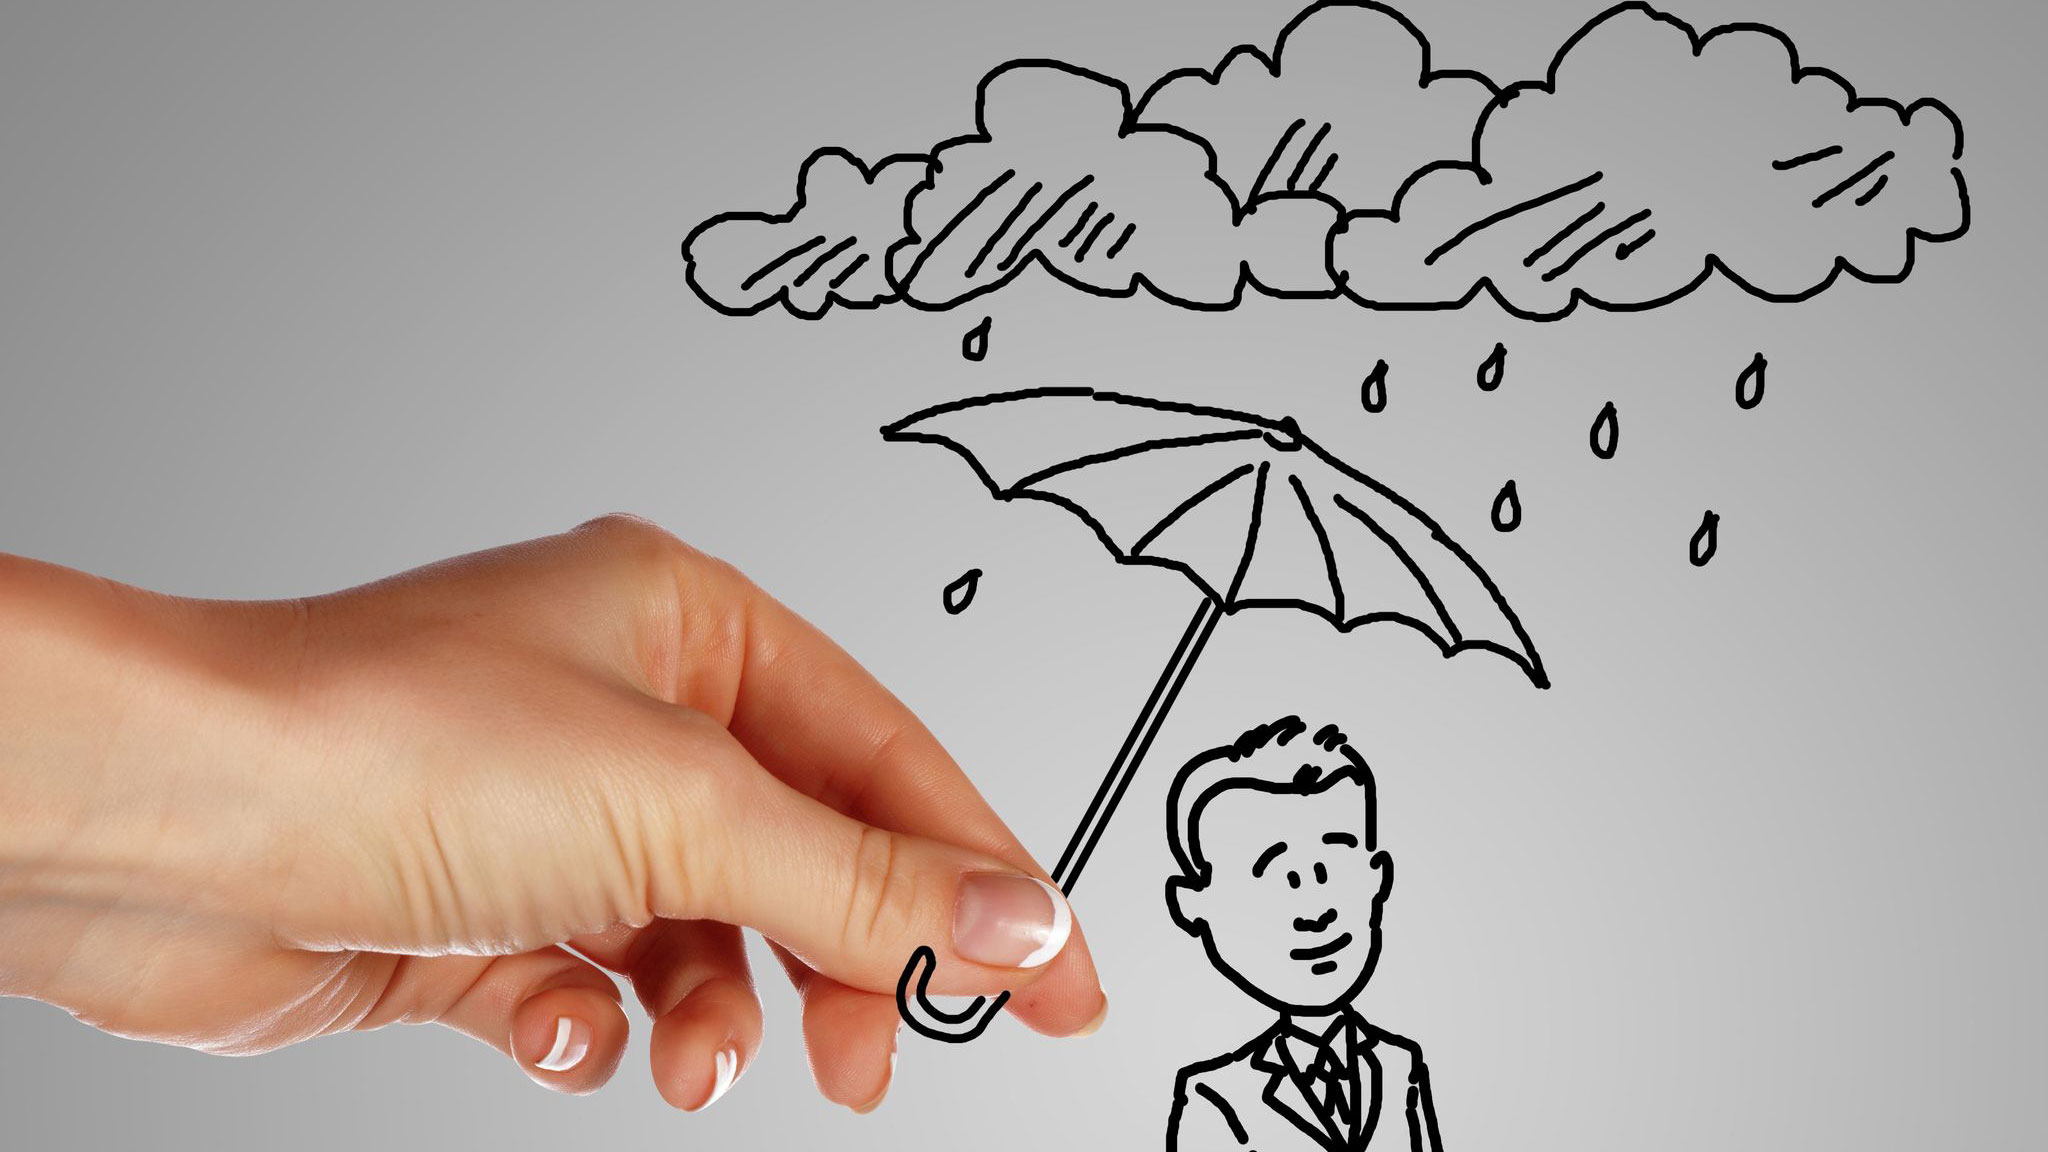 Insurance brokers of md